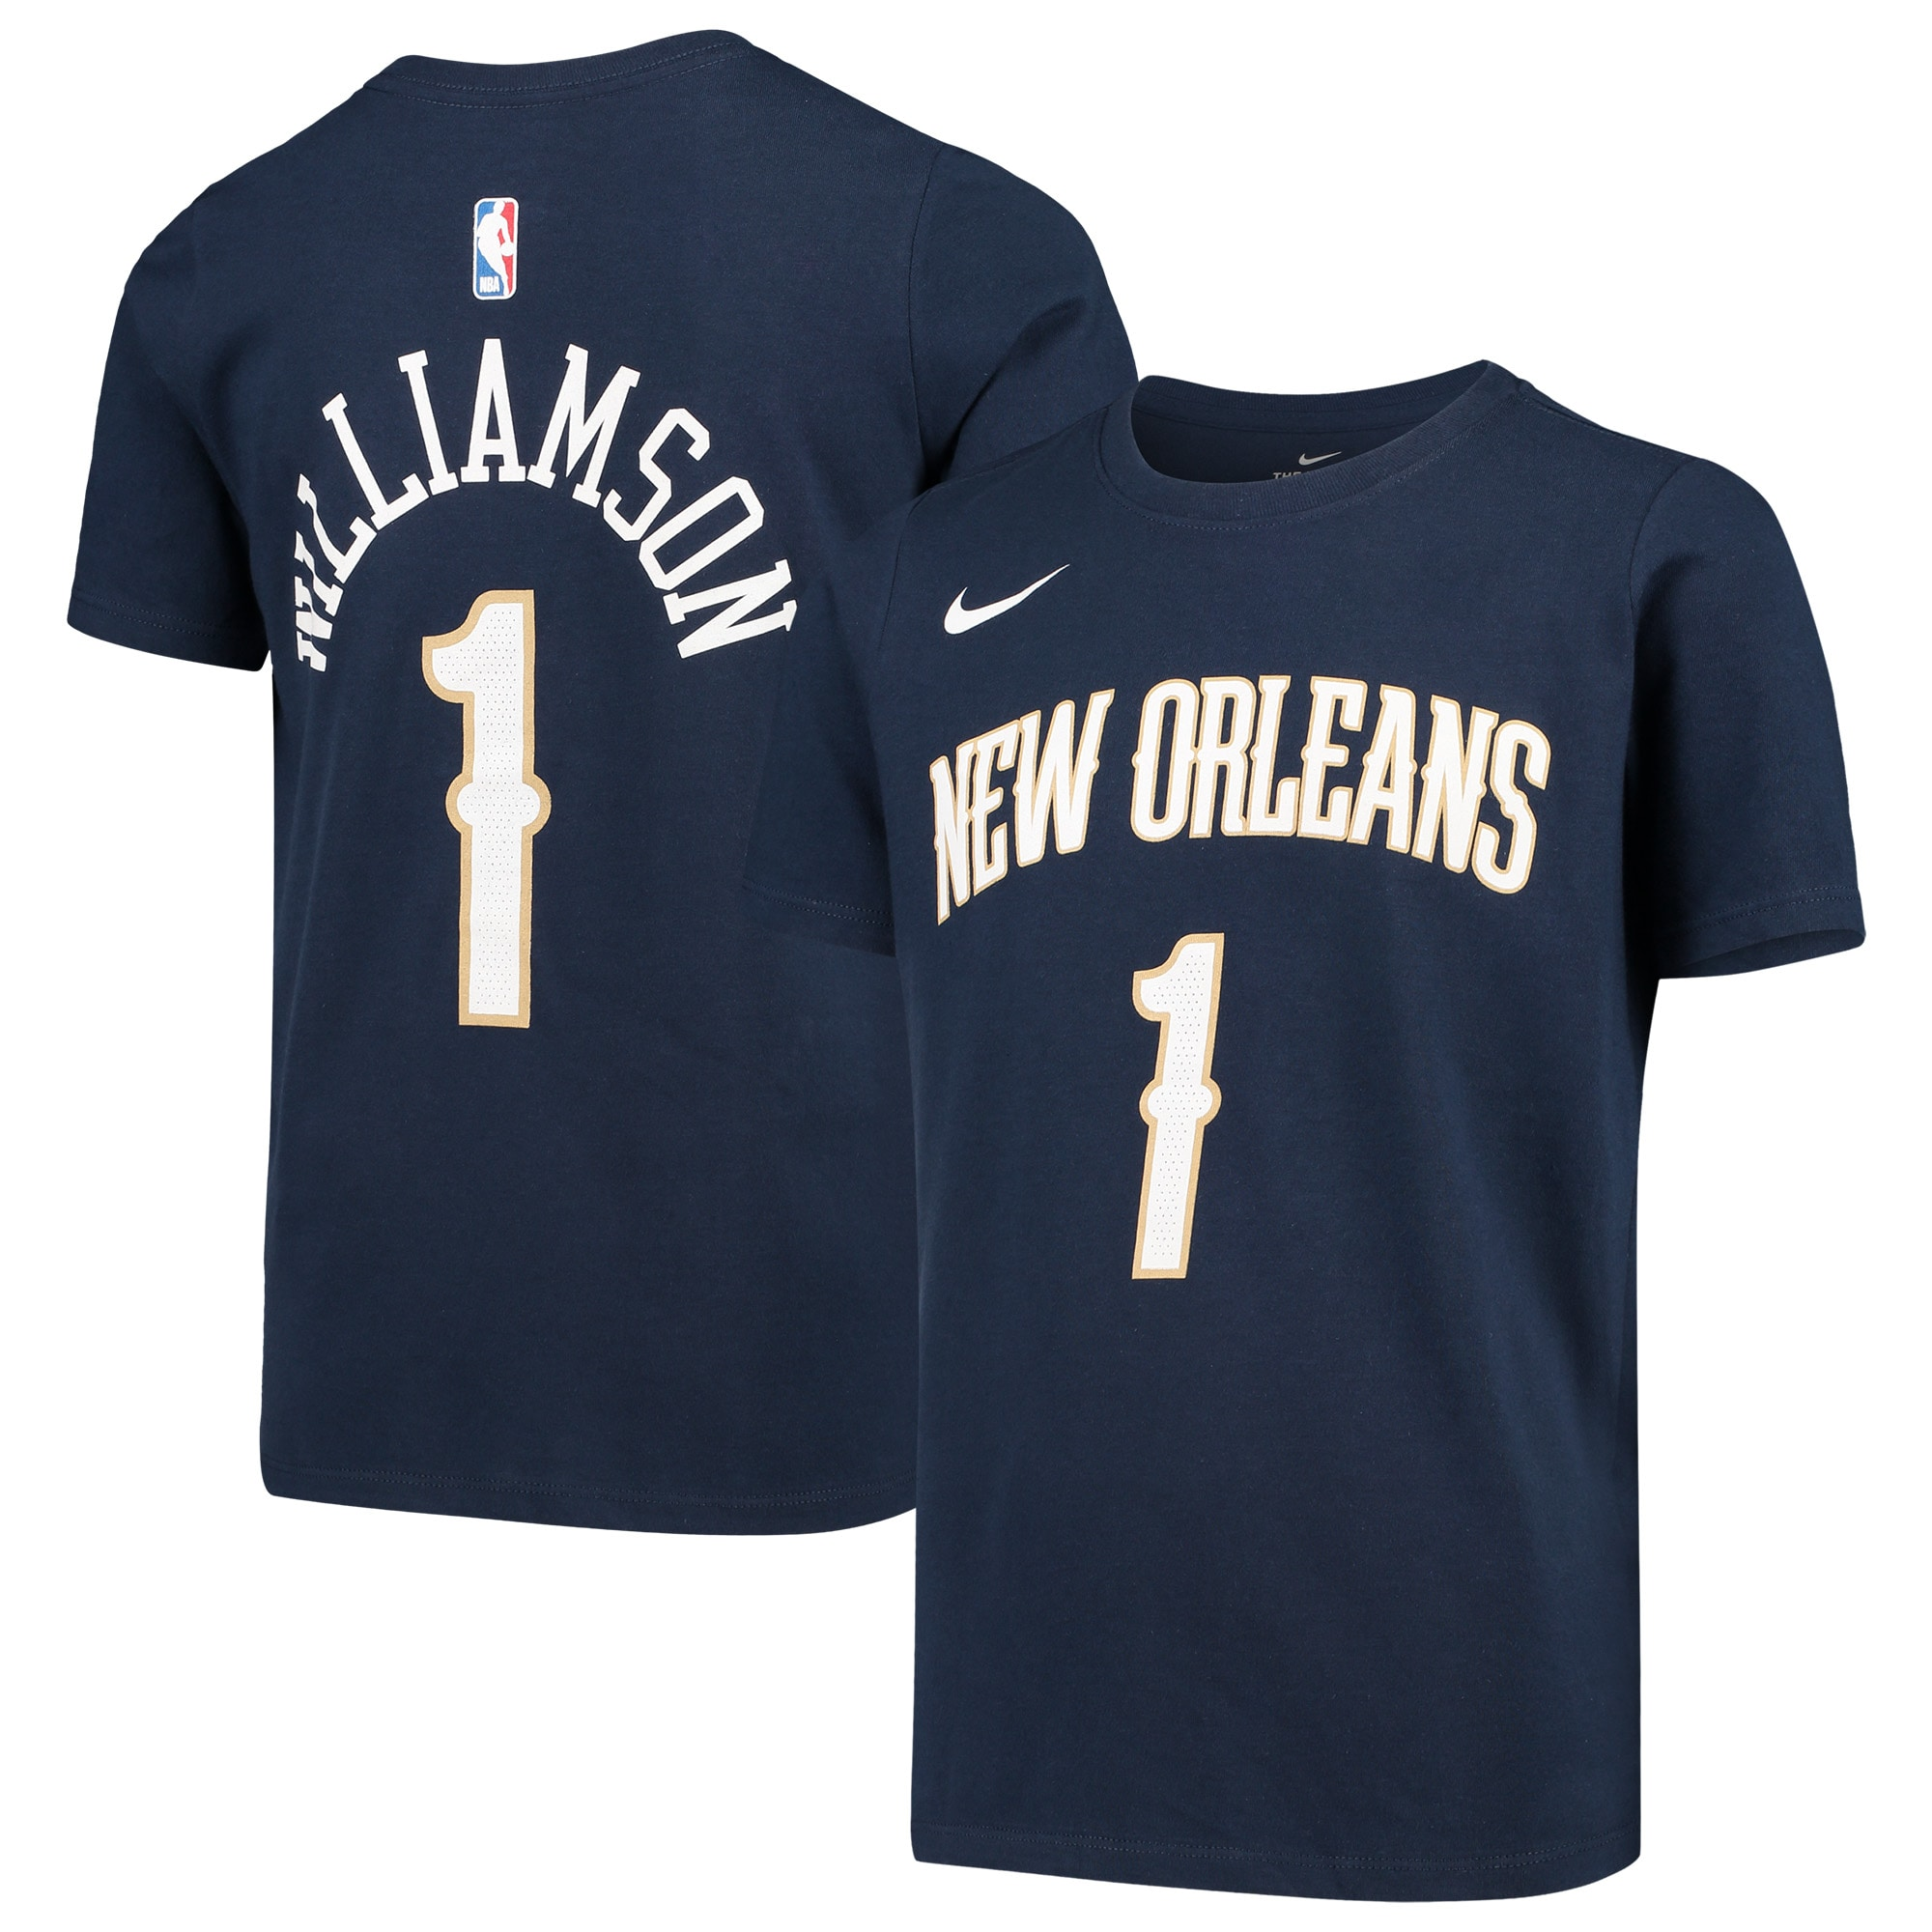 Zion Williamson New Orleans Pelicans Nike Youth Name & Number Performance T-Shirt - Navy